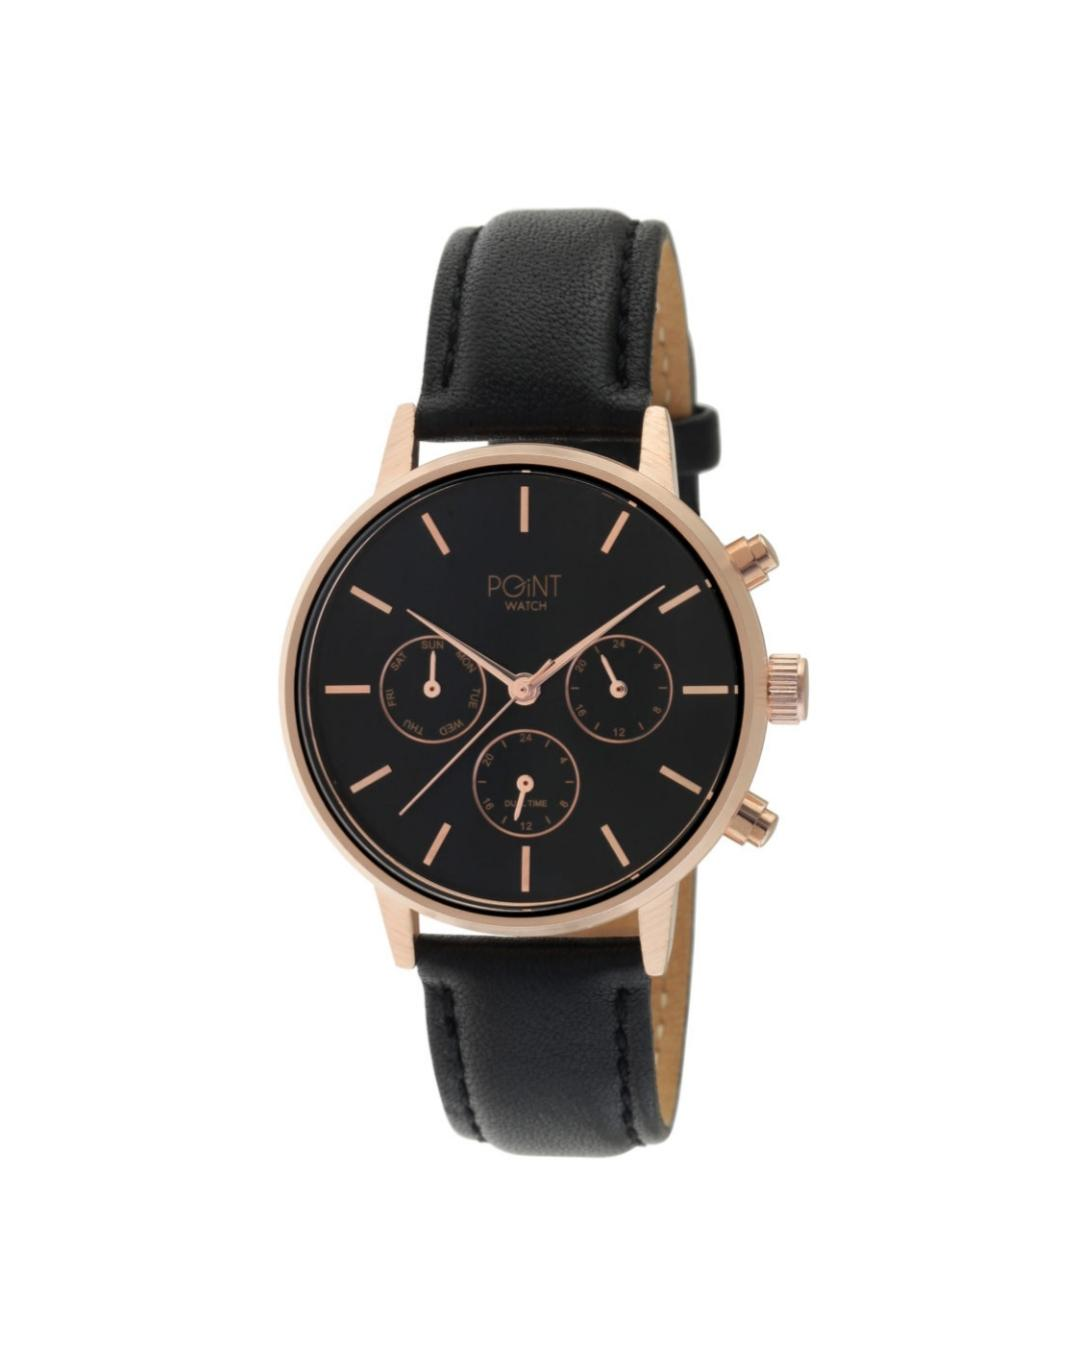 Γυναικείο Ρολόι Point Aphrodite Black Leather Strap SK39.